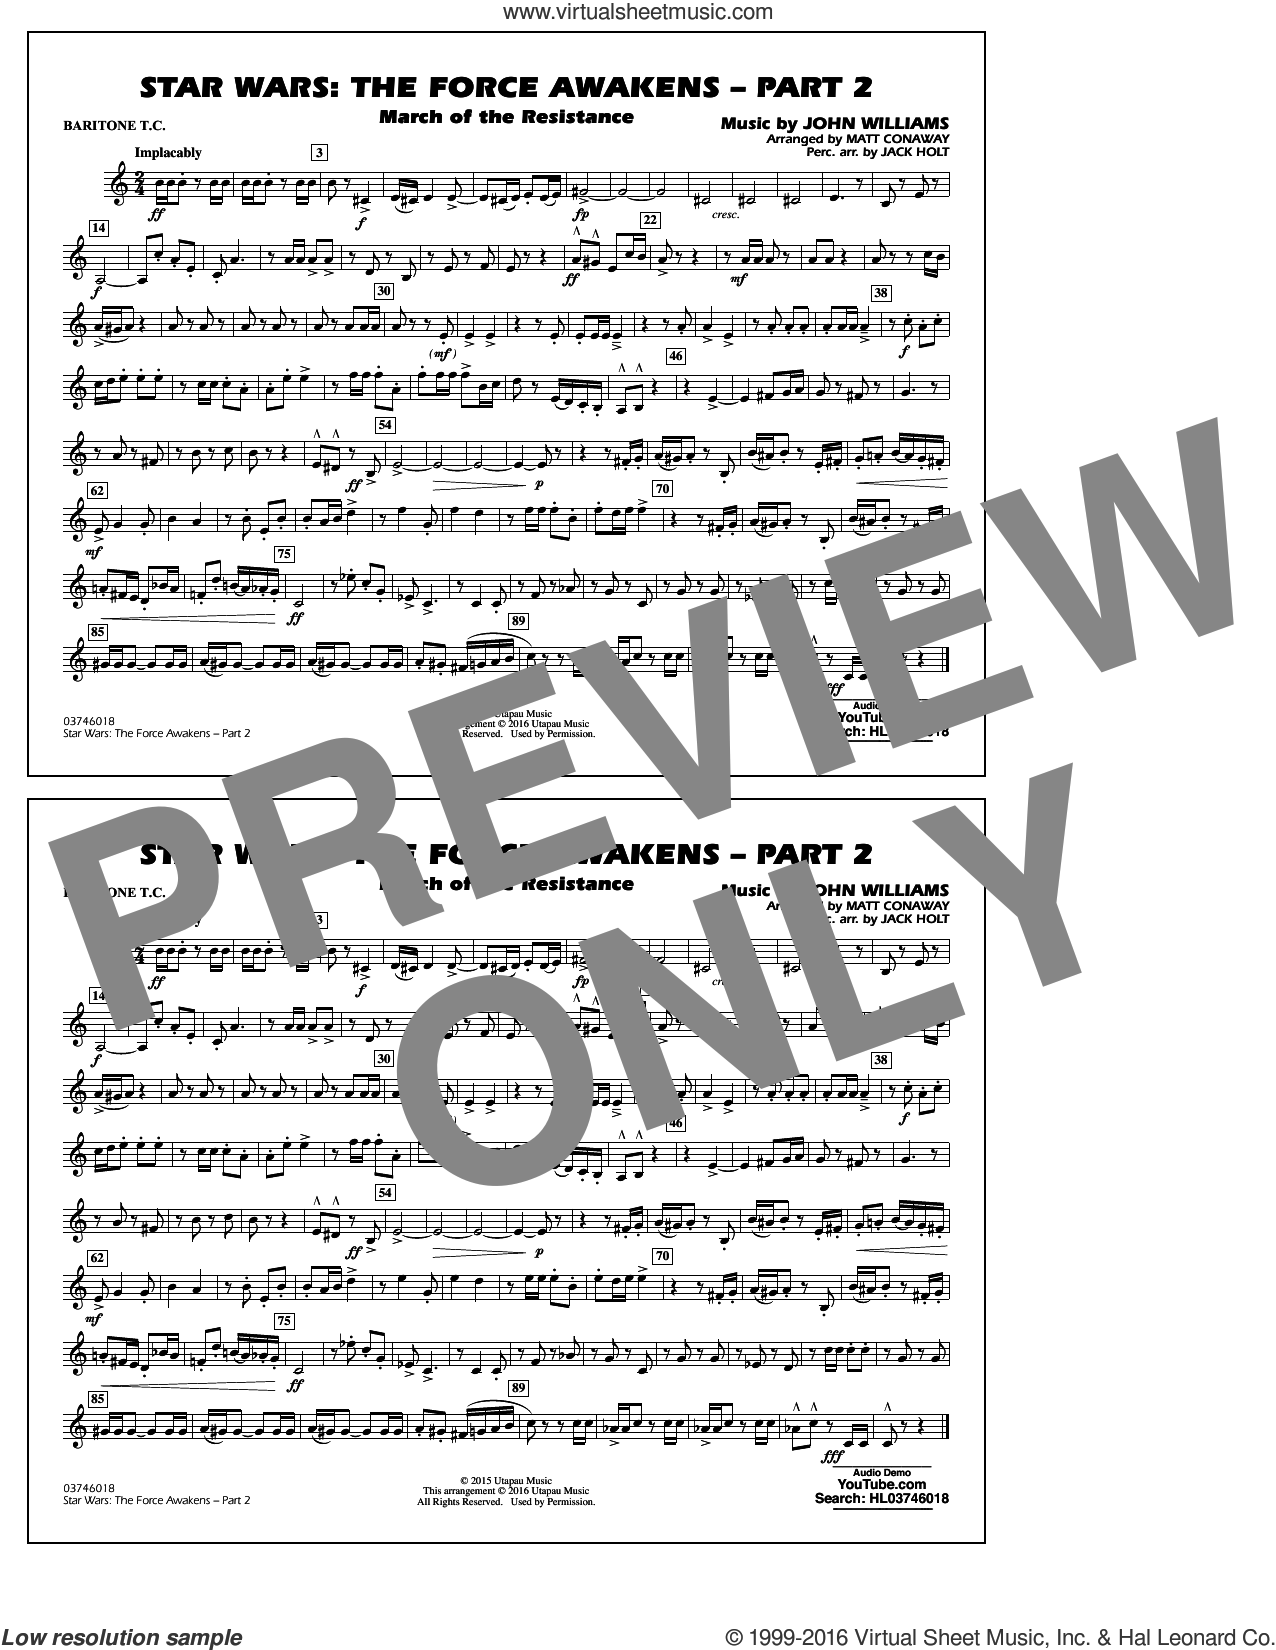 Star Wars: The Force Awakens, part 2 sheet music for marching band (baritone t.c.) by John Williams and Matt Conaway, classical score, intermediate skill level